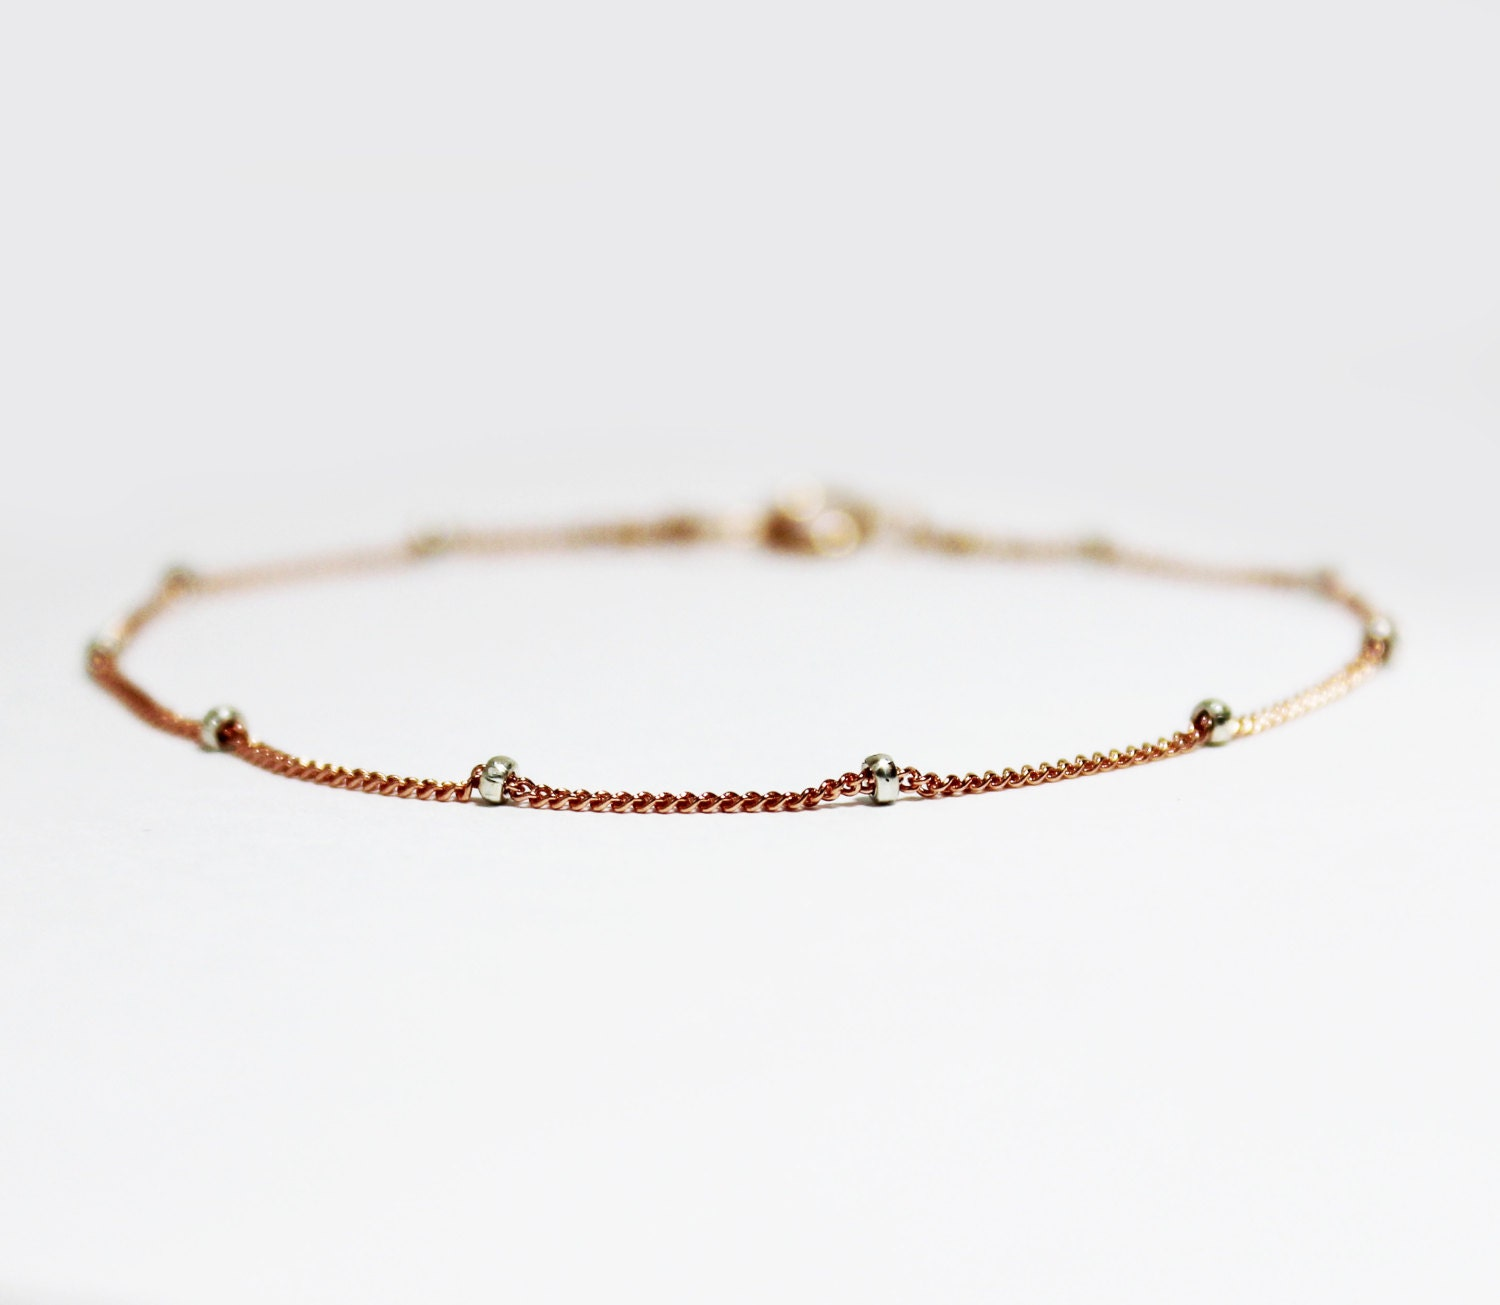 8eecf8be54bf5 Rose Gold Plated Sterling Silver Stacking Bracelet - Bridesmaids Gift ...